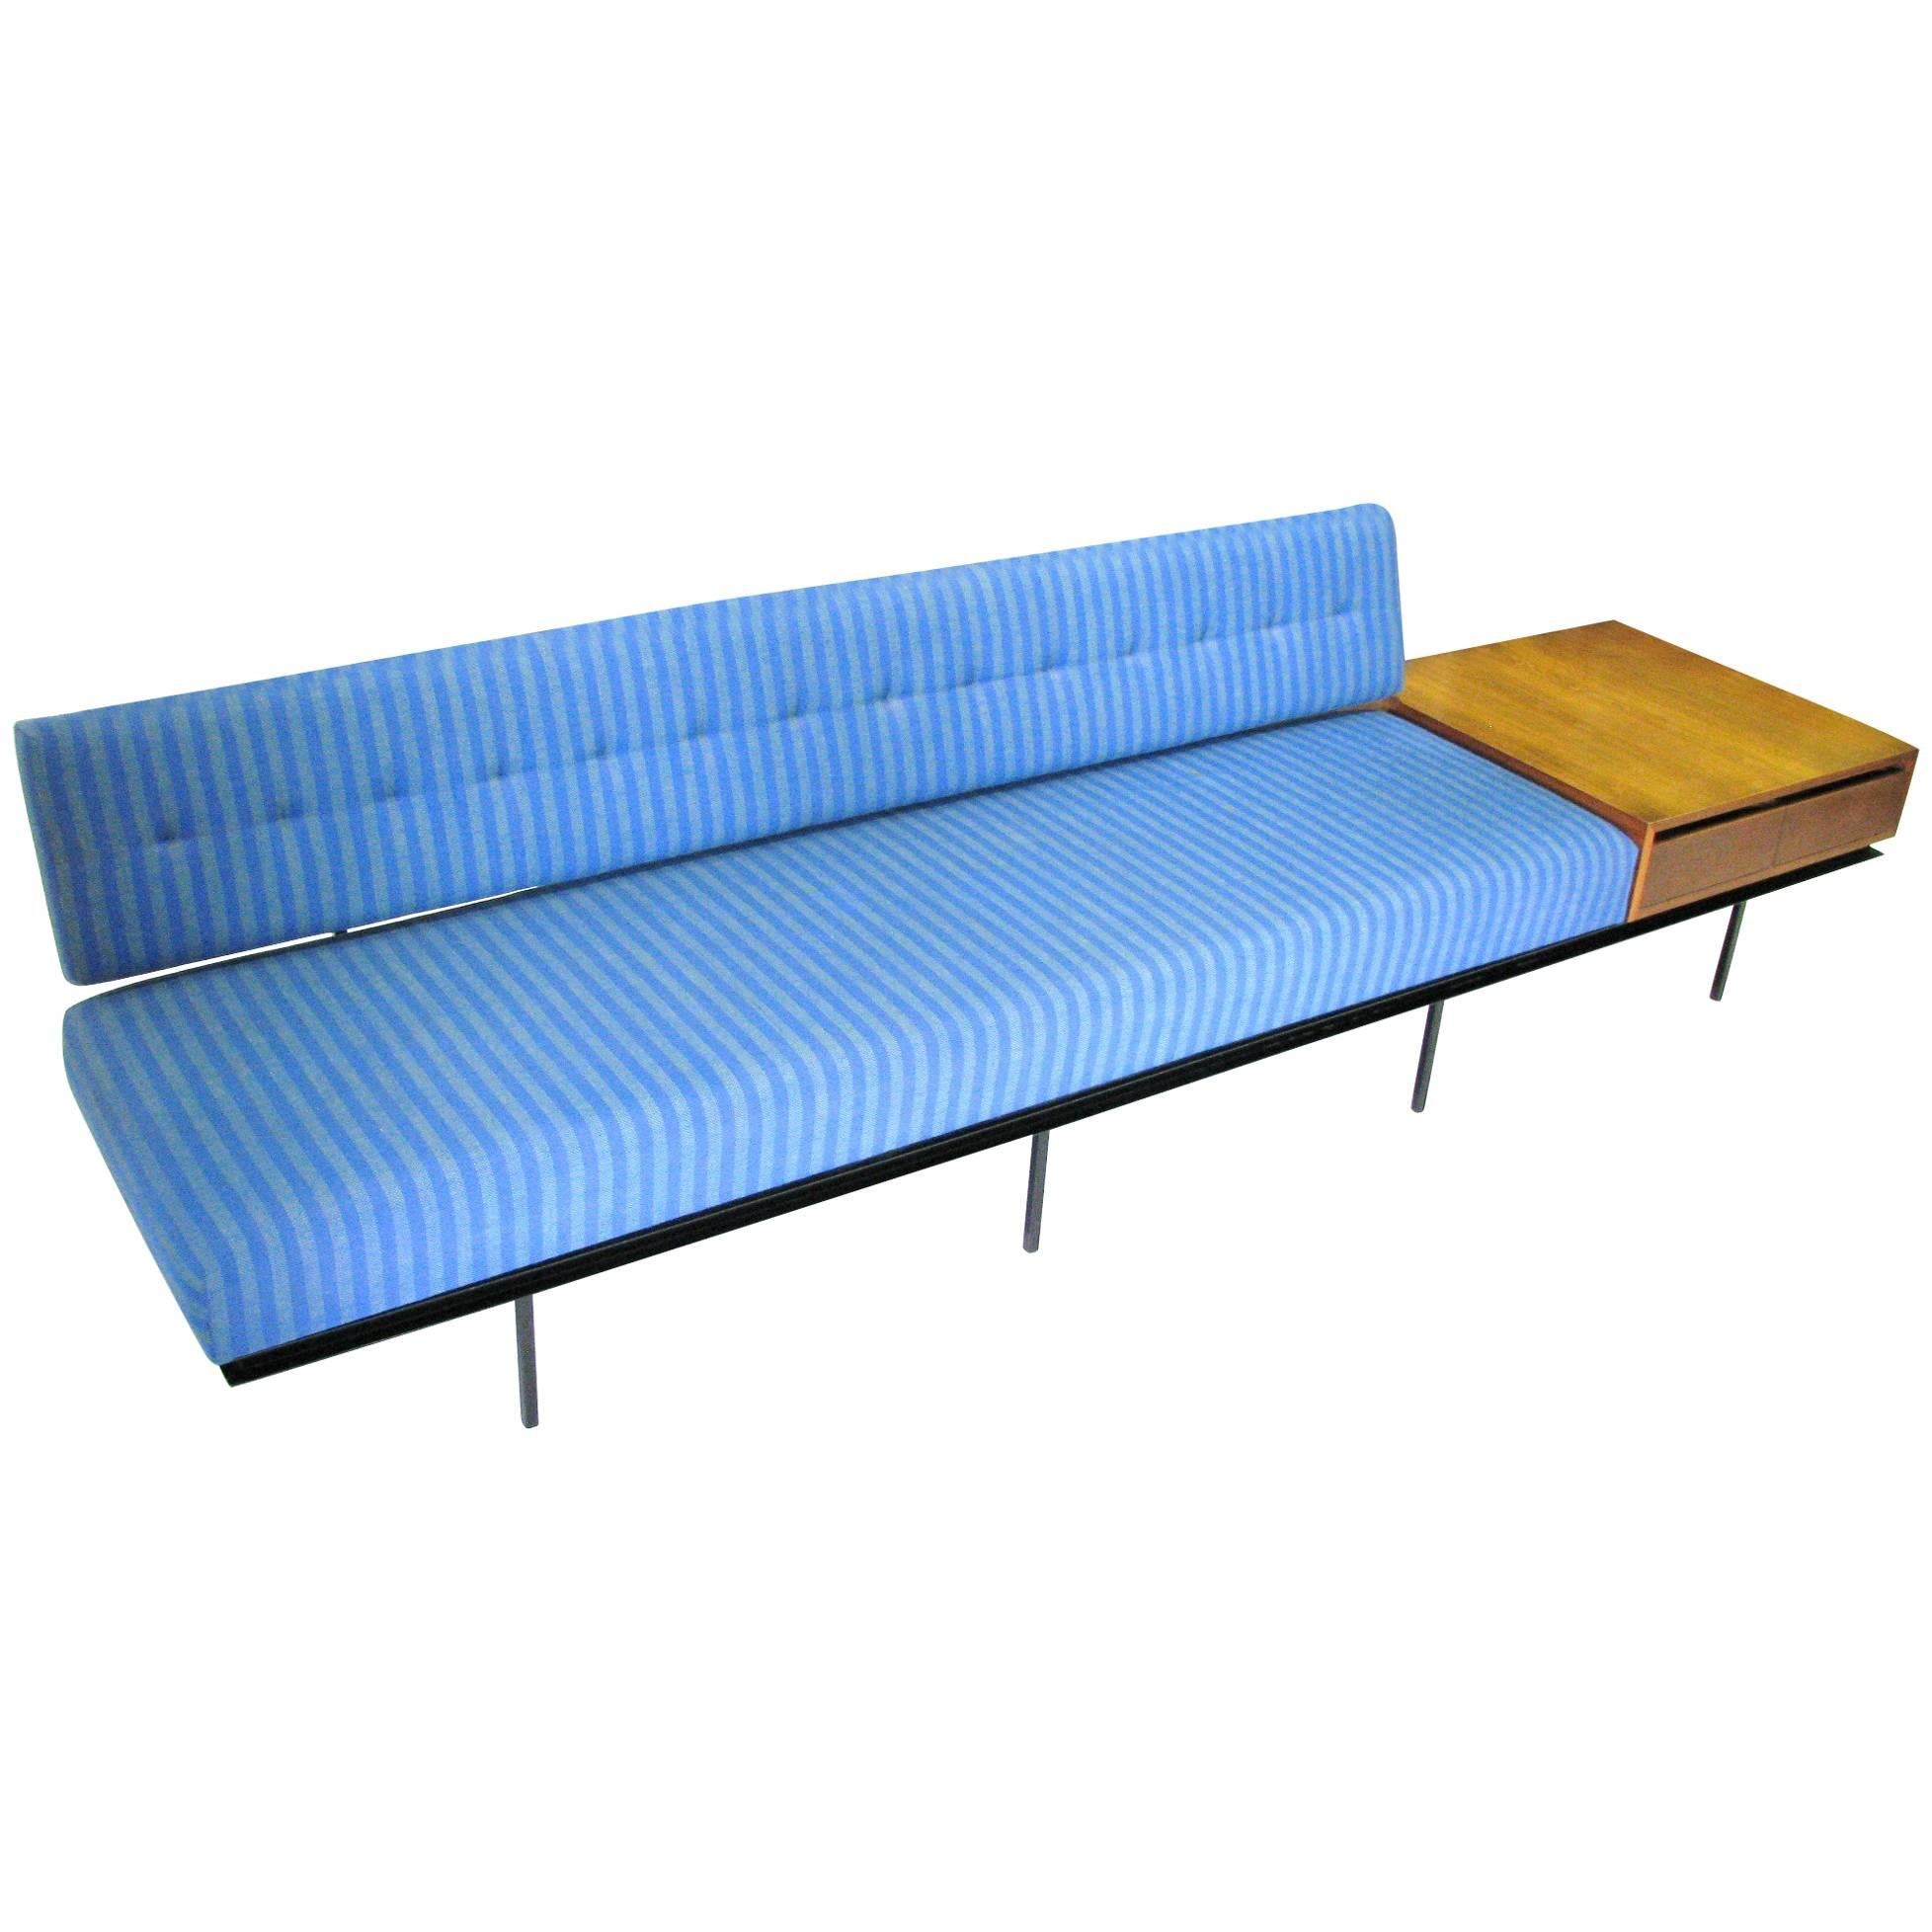 Midcentury Sofa/End Table Combination Designed by Florence Knoll